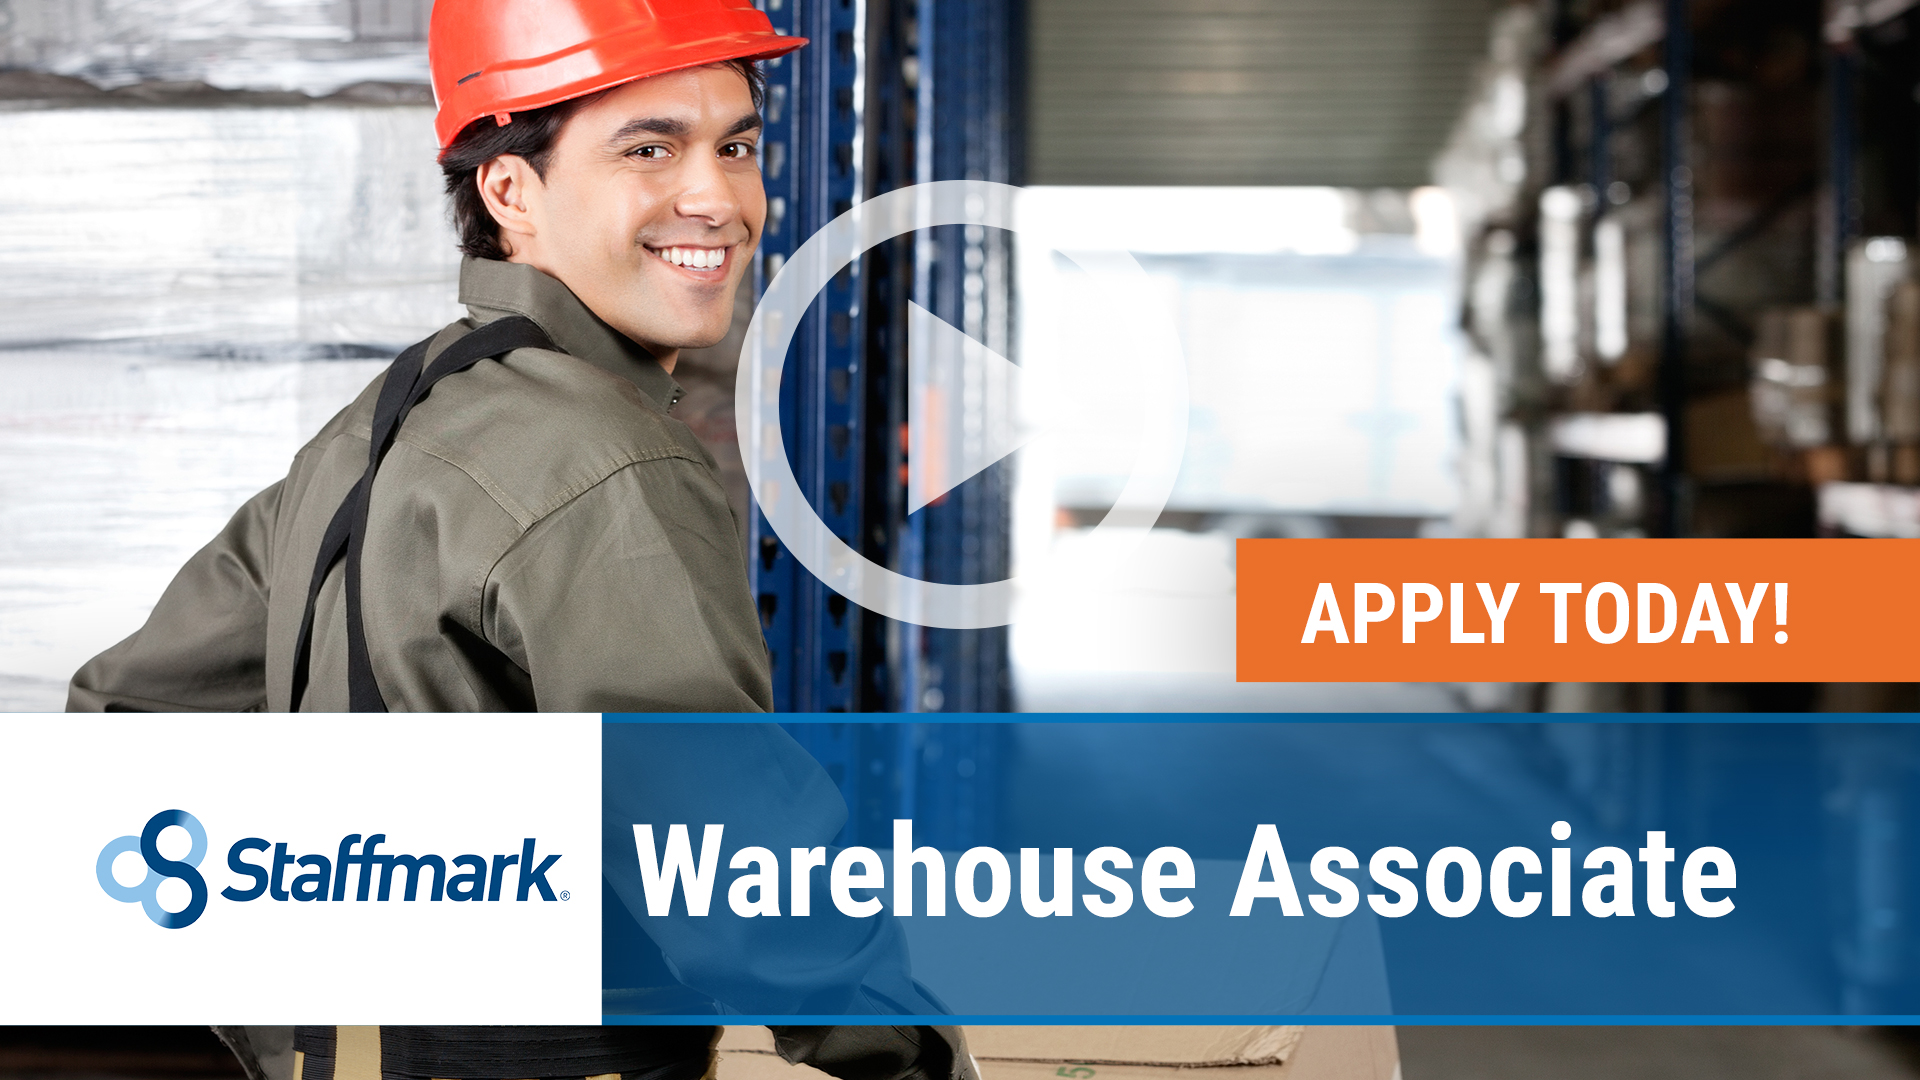 Watch our careers video for available job opening Warehouse Associate in Fort Worth, TX, USA